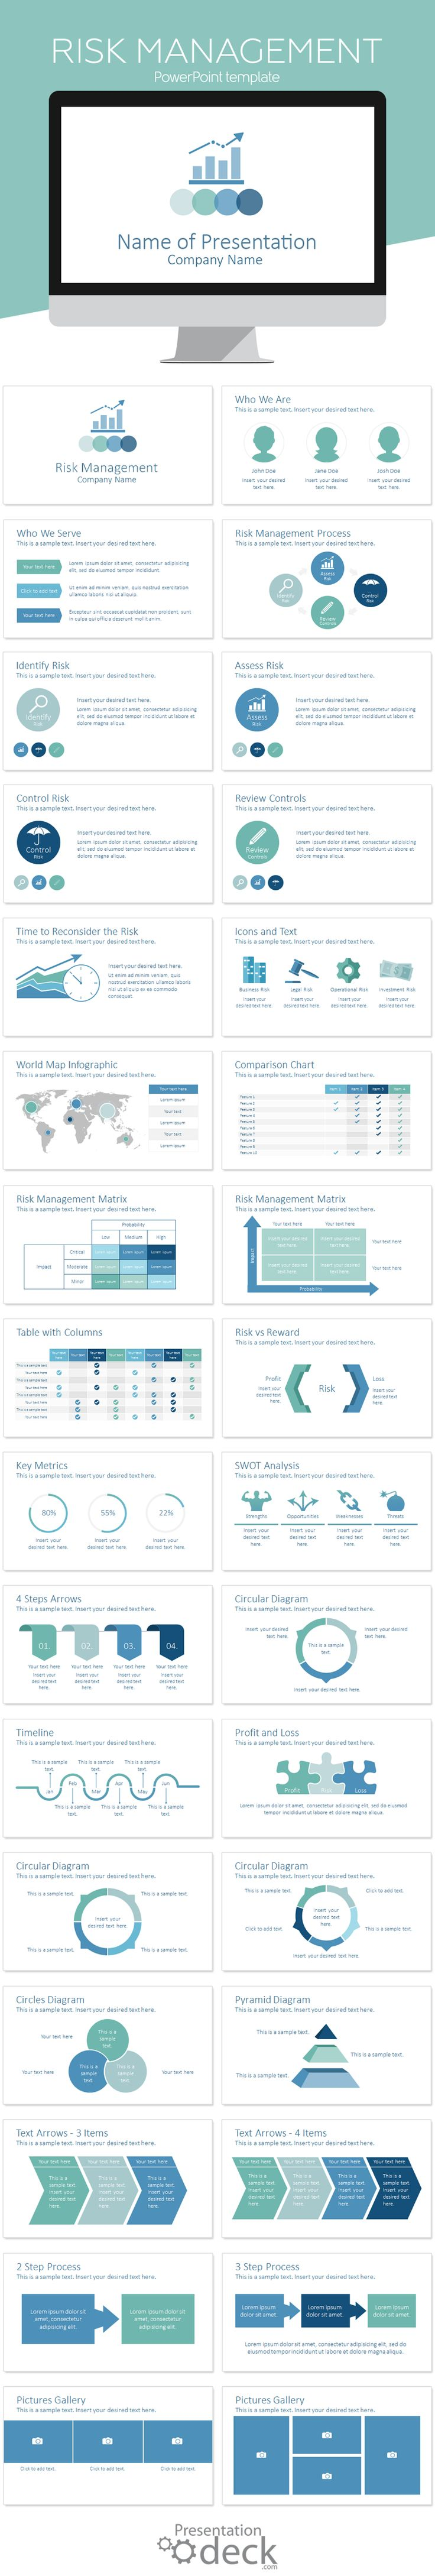 Risk management PowerPoint template with 32 pre-designed slides. All design elements are vector-based and fully editable in the slide master view in PowerPoint. Energize your presentation today with this risk management PowerPoint template!